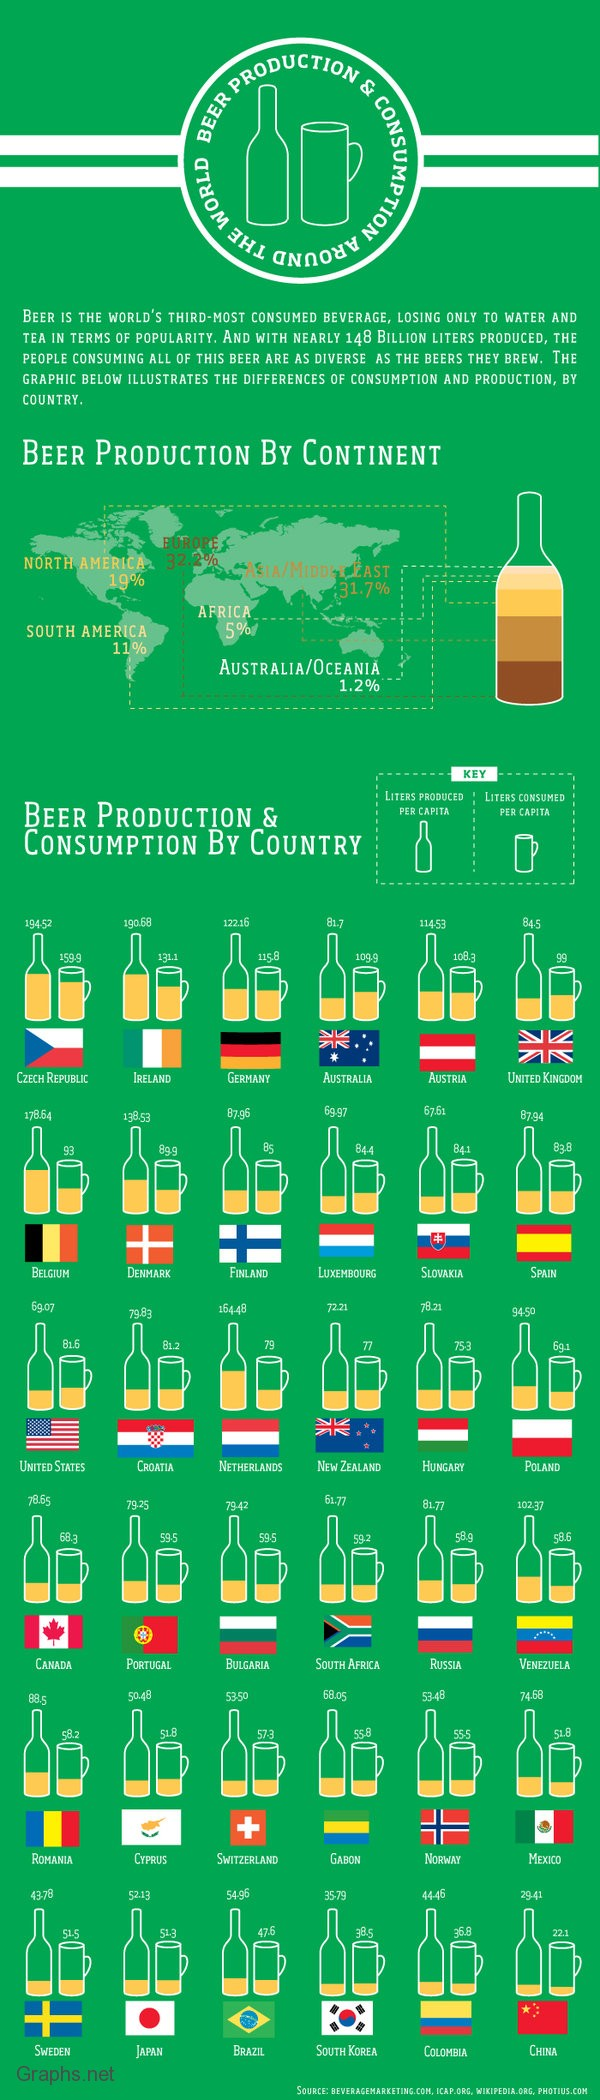 Production of Beer